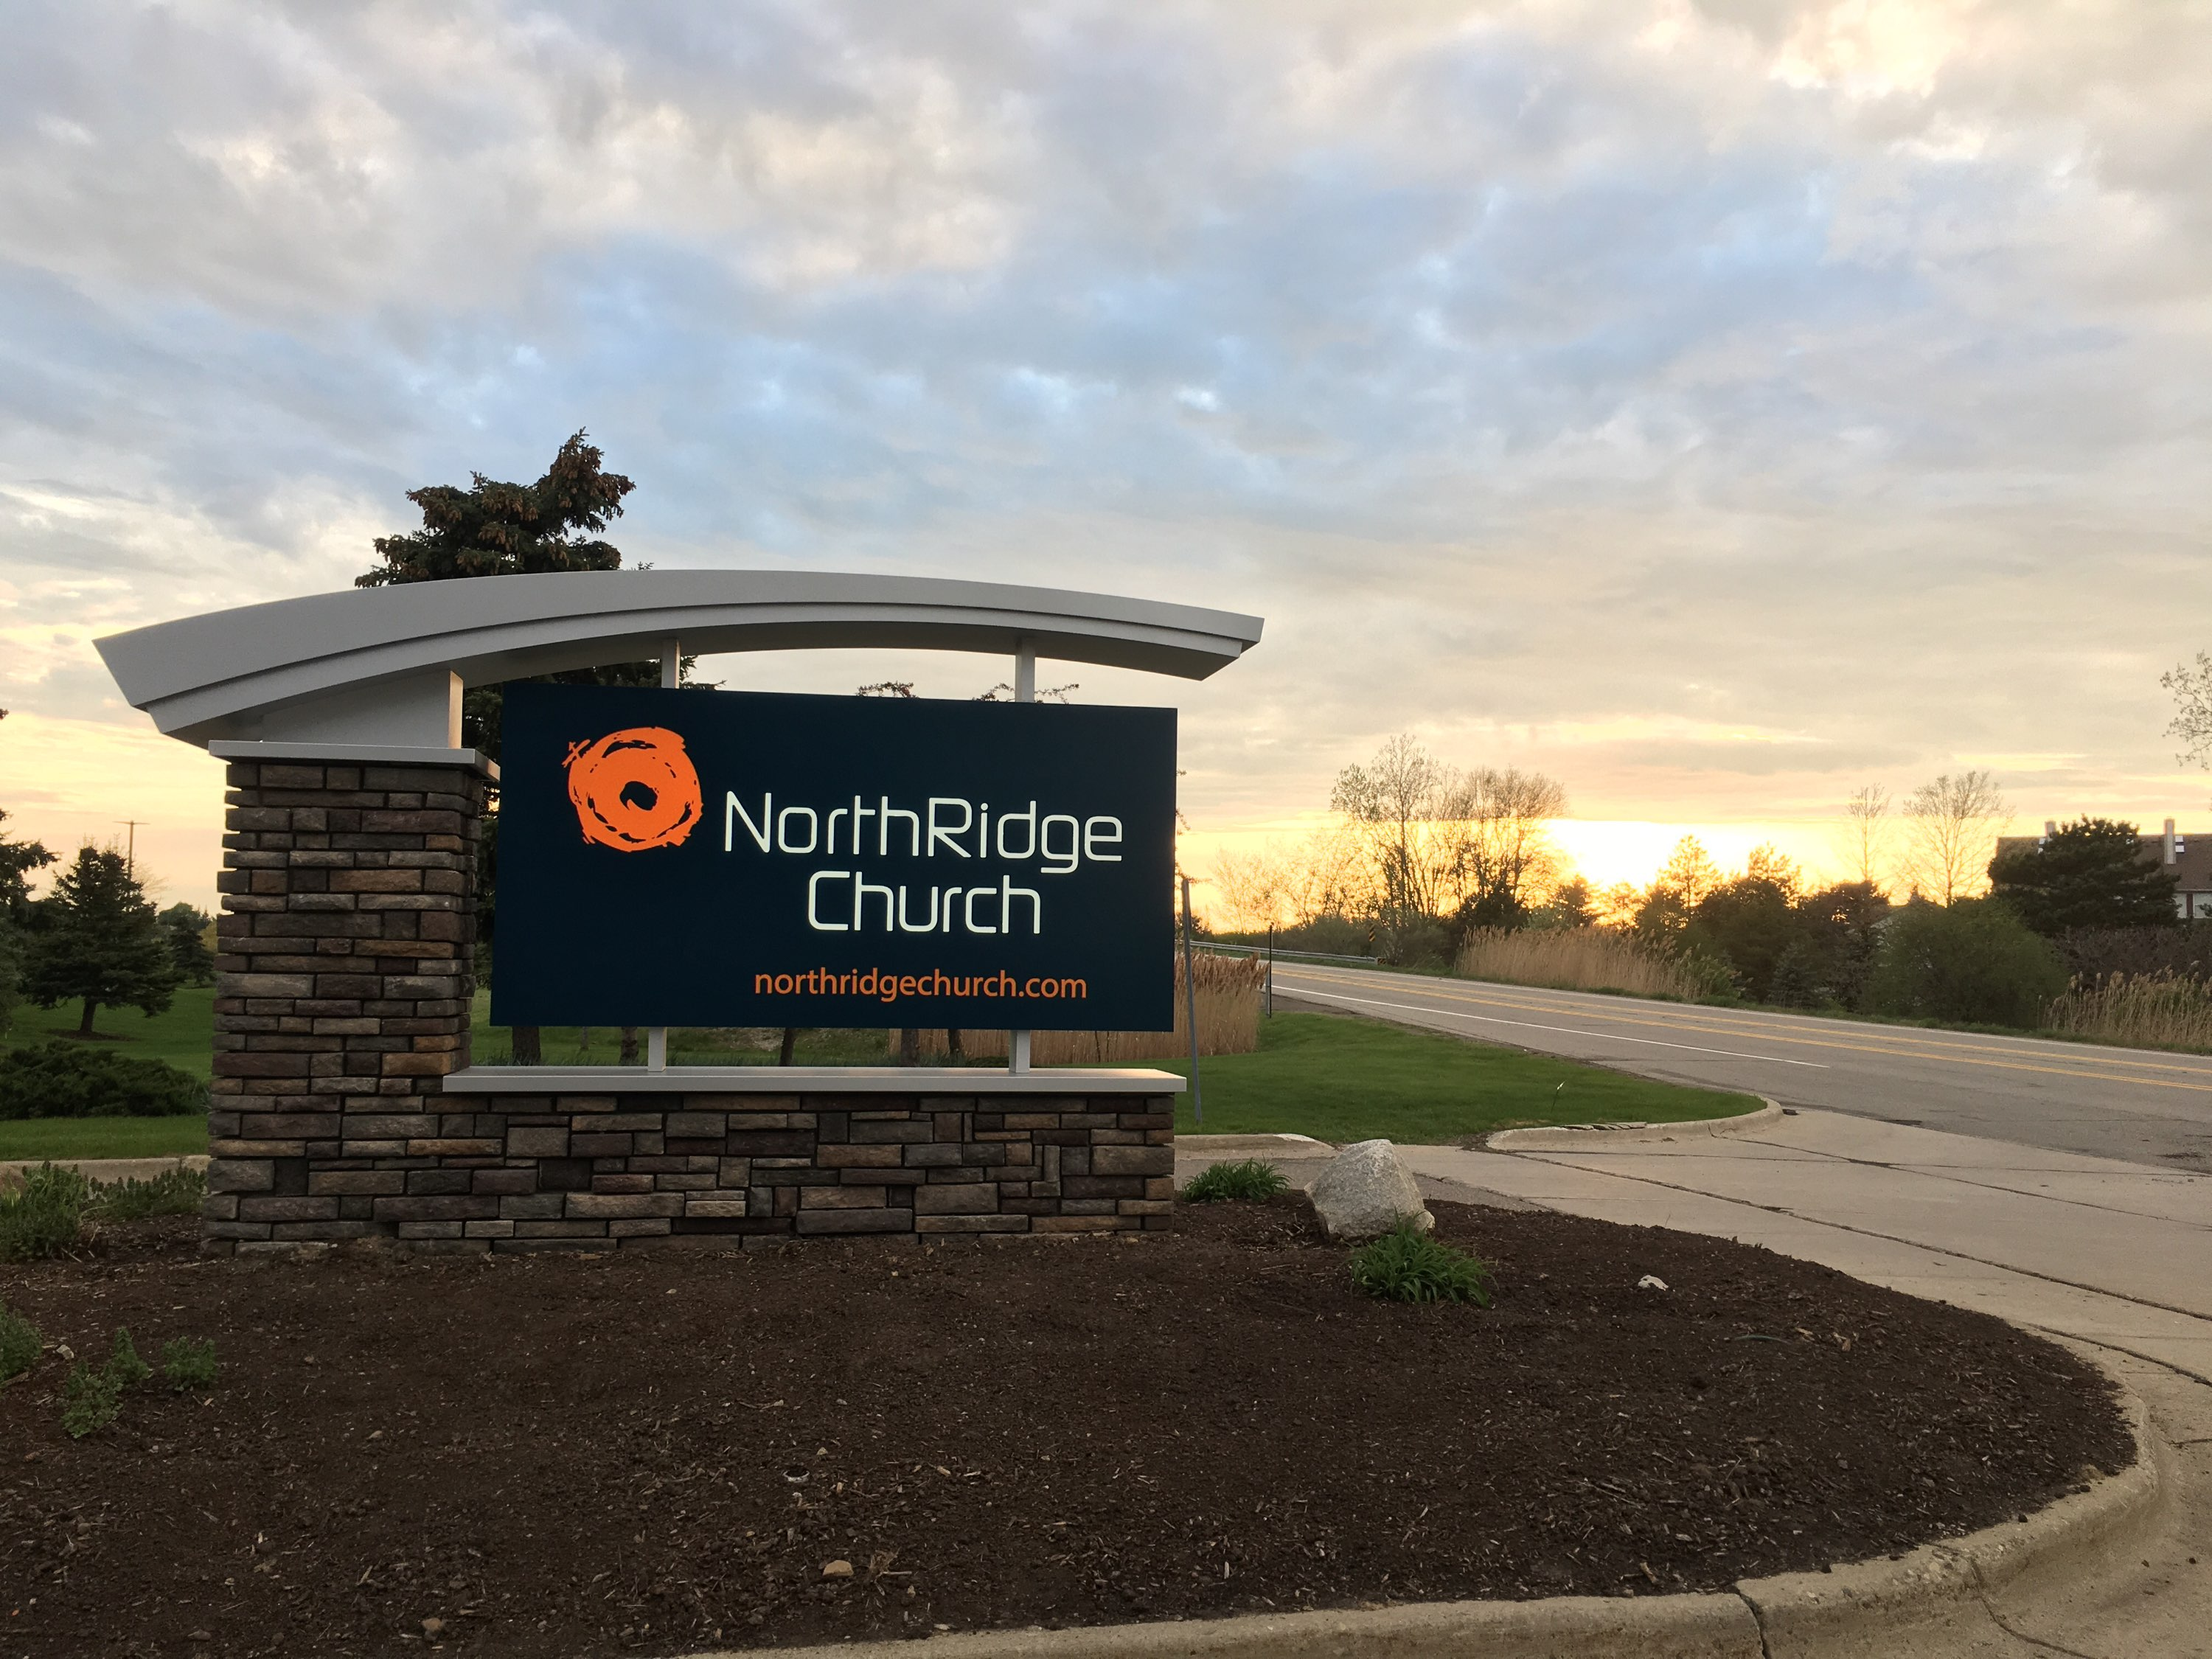 Northridge Church 49555 N Territorial Rd, Plymouth, MI 48170 - YP.com